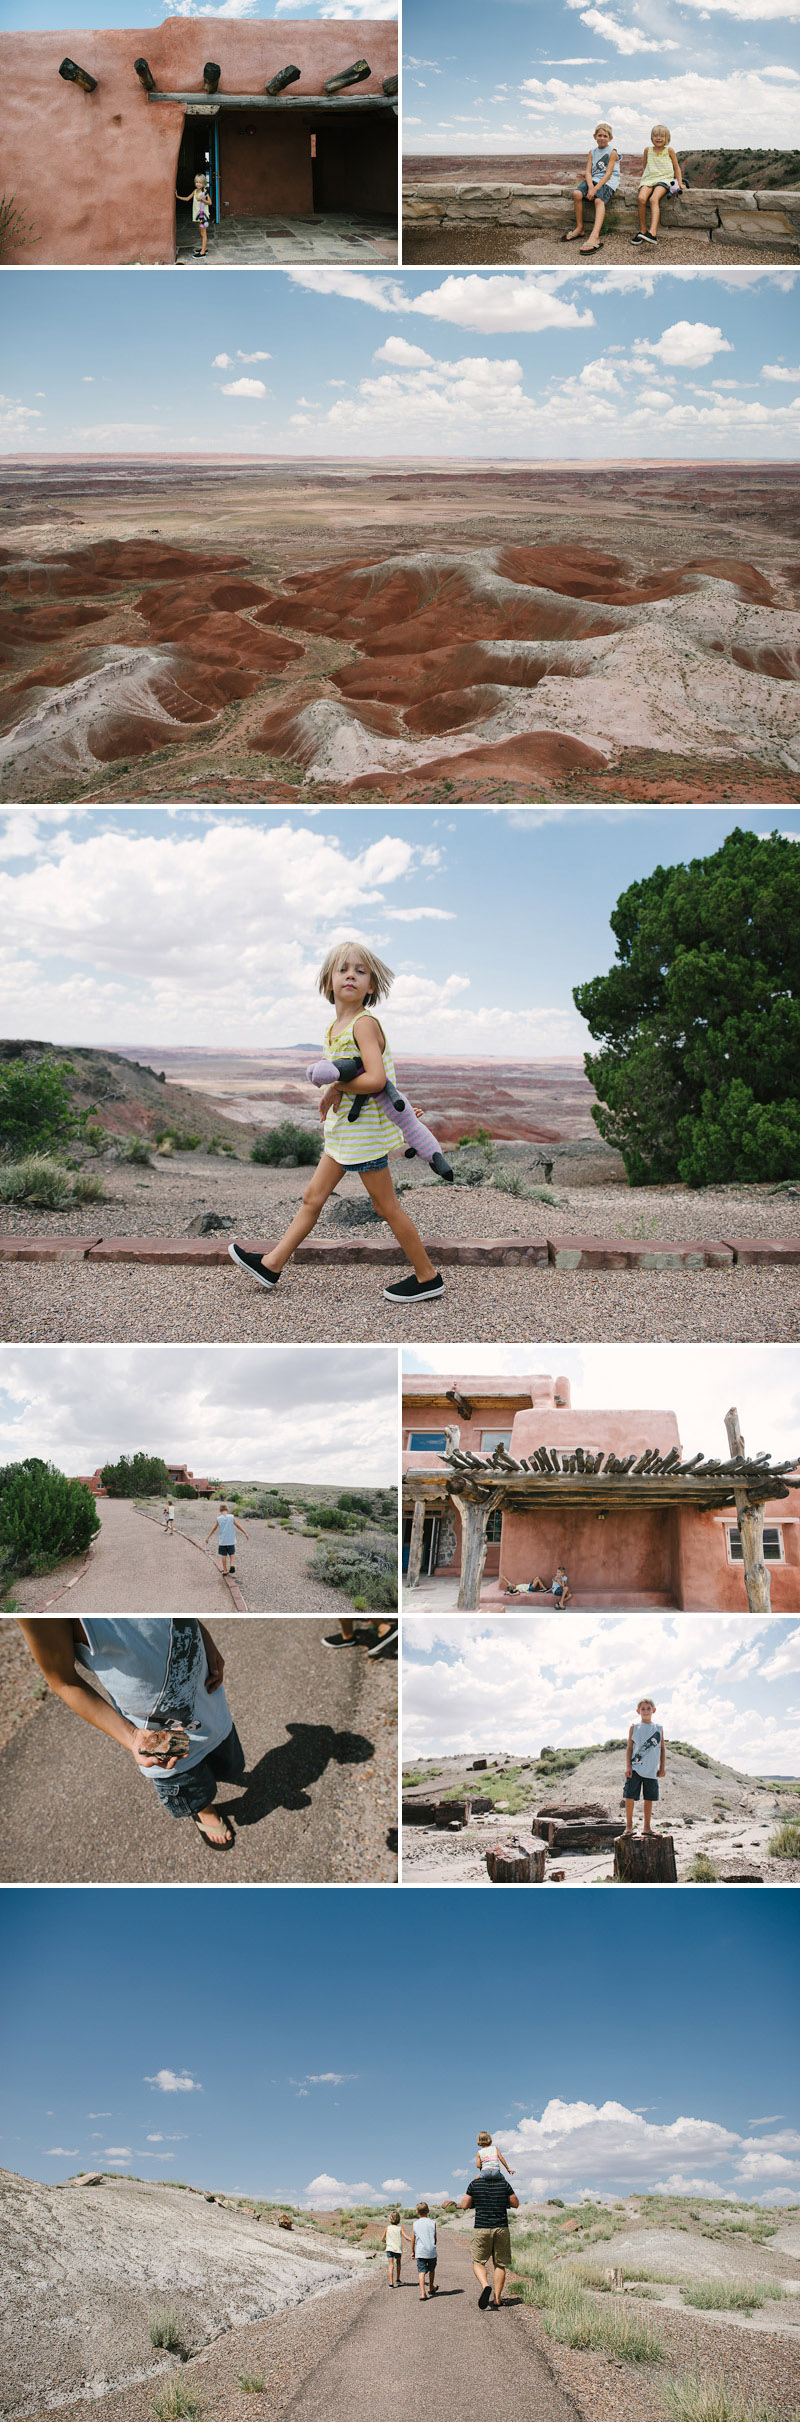 family visiting the painted desert in arizona